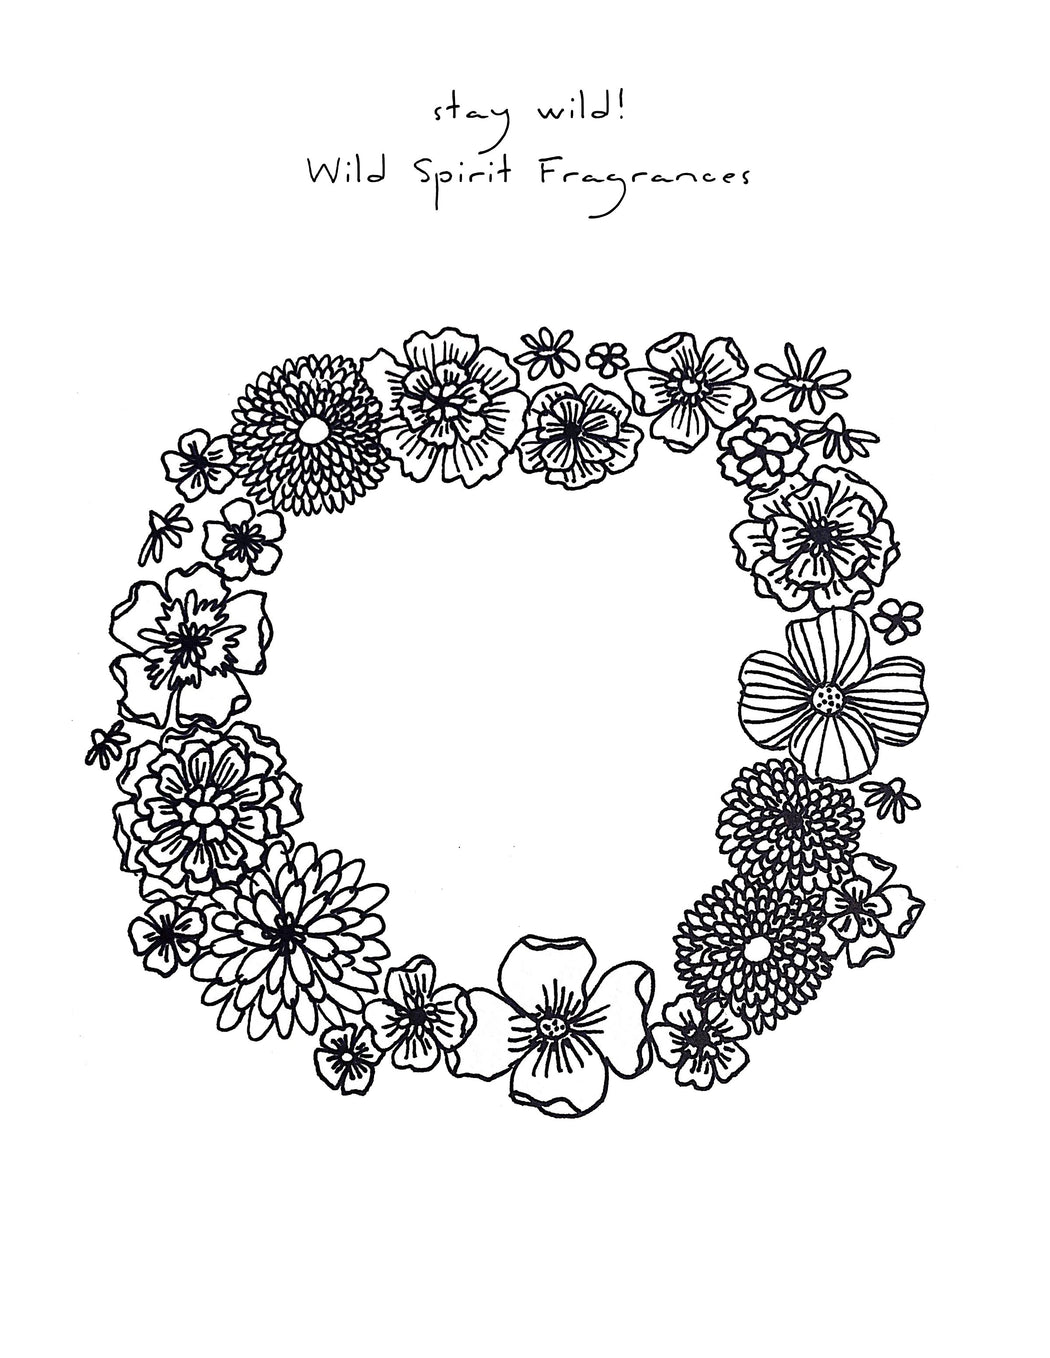 Who doesn't love a little coloring? Download, print, and color in this Wild Spirit, boho inspired coloring page. With beautiful flowers and endless color opportunities, find your zen and enjoy this coloring page from Wild Spirit Fragrances!